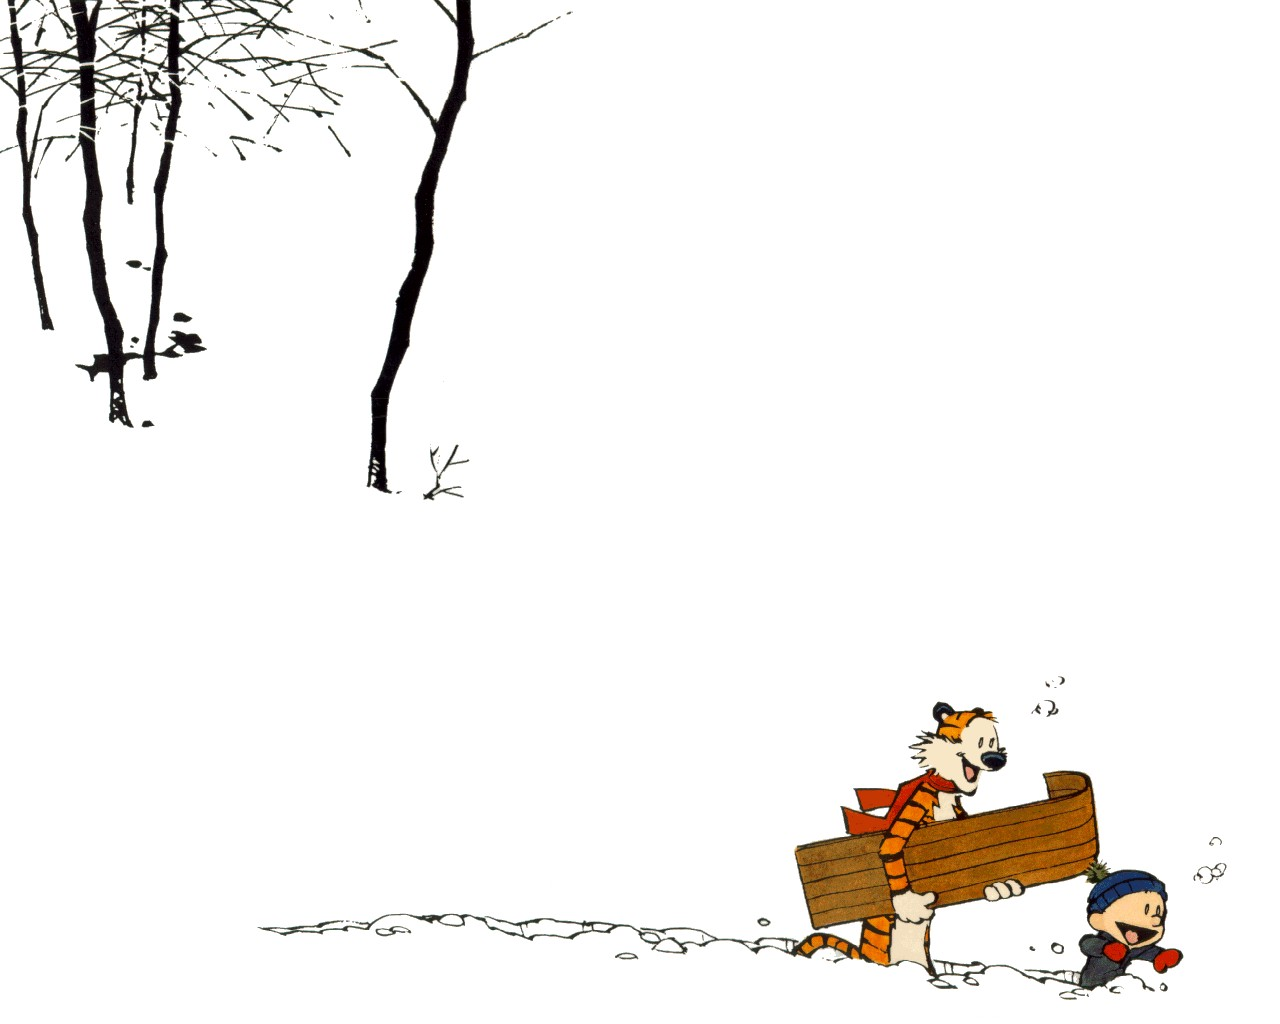 ... Calvin and Hobbes HD Cartoon Wallpapers,High Resolution Backgrounds